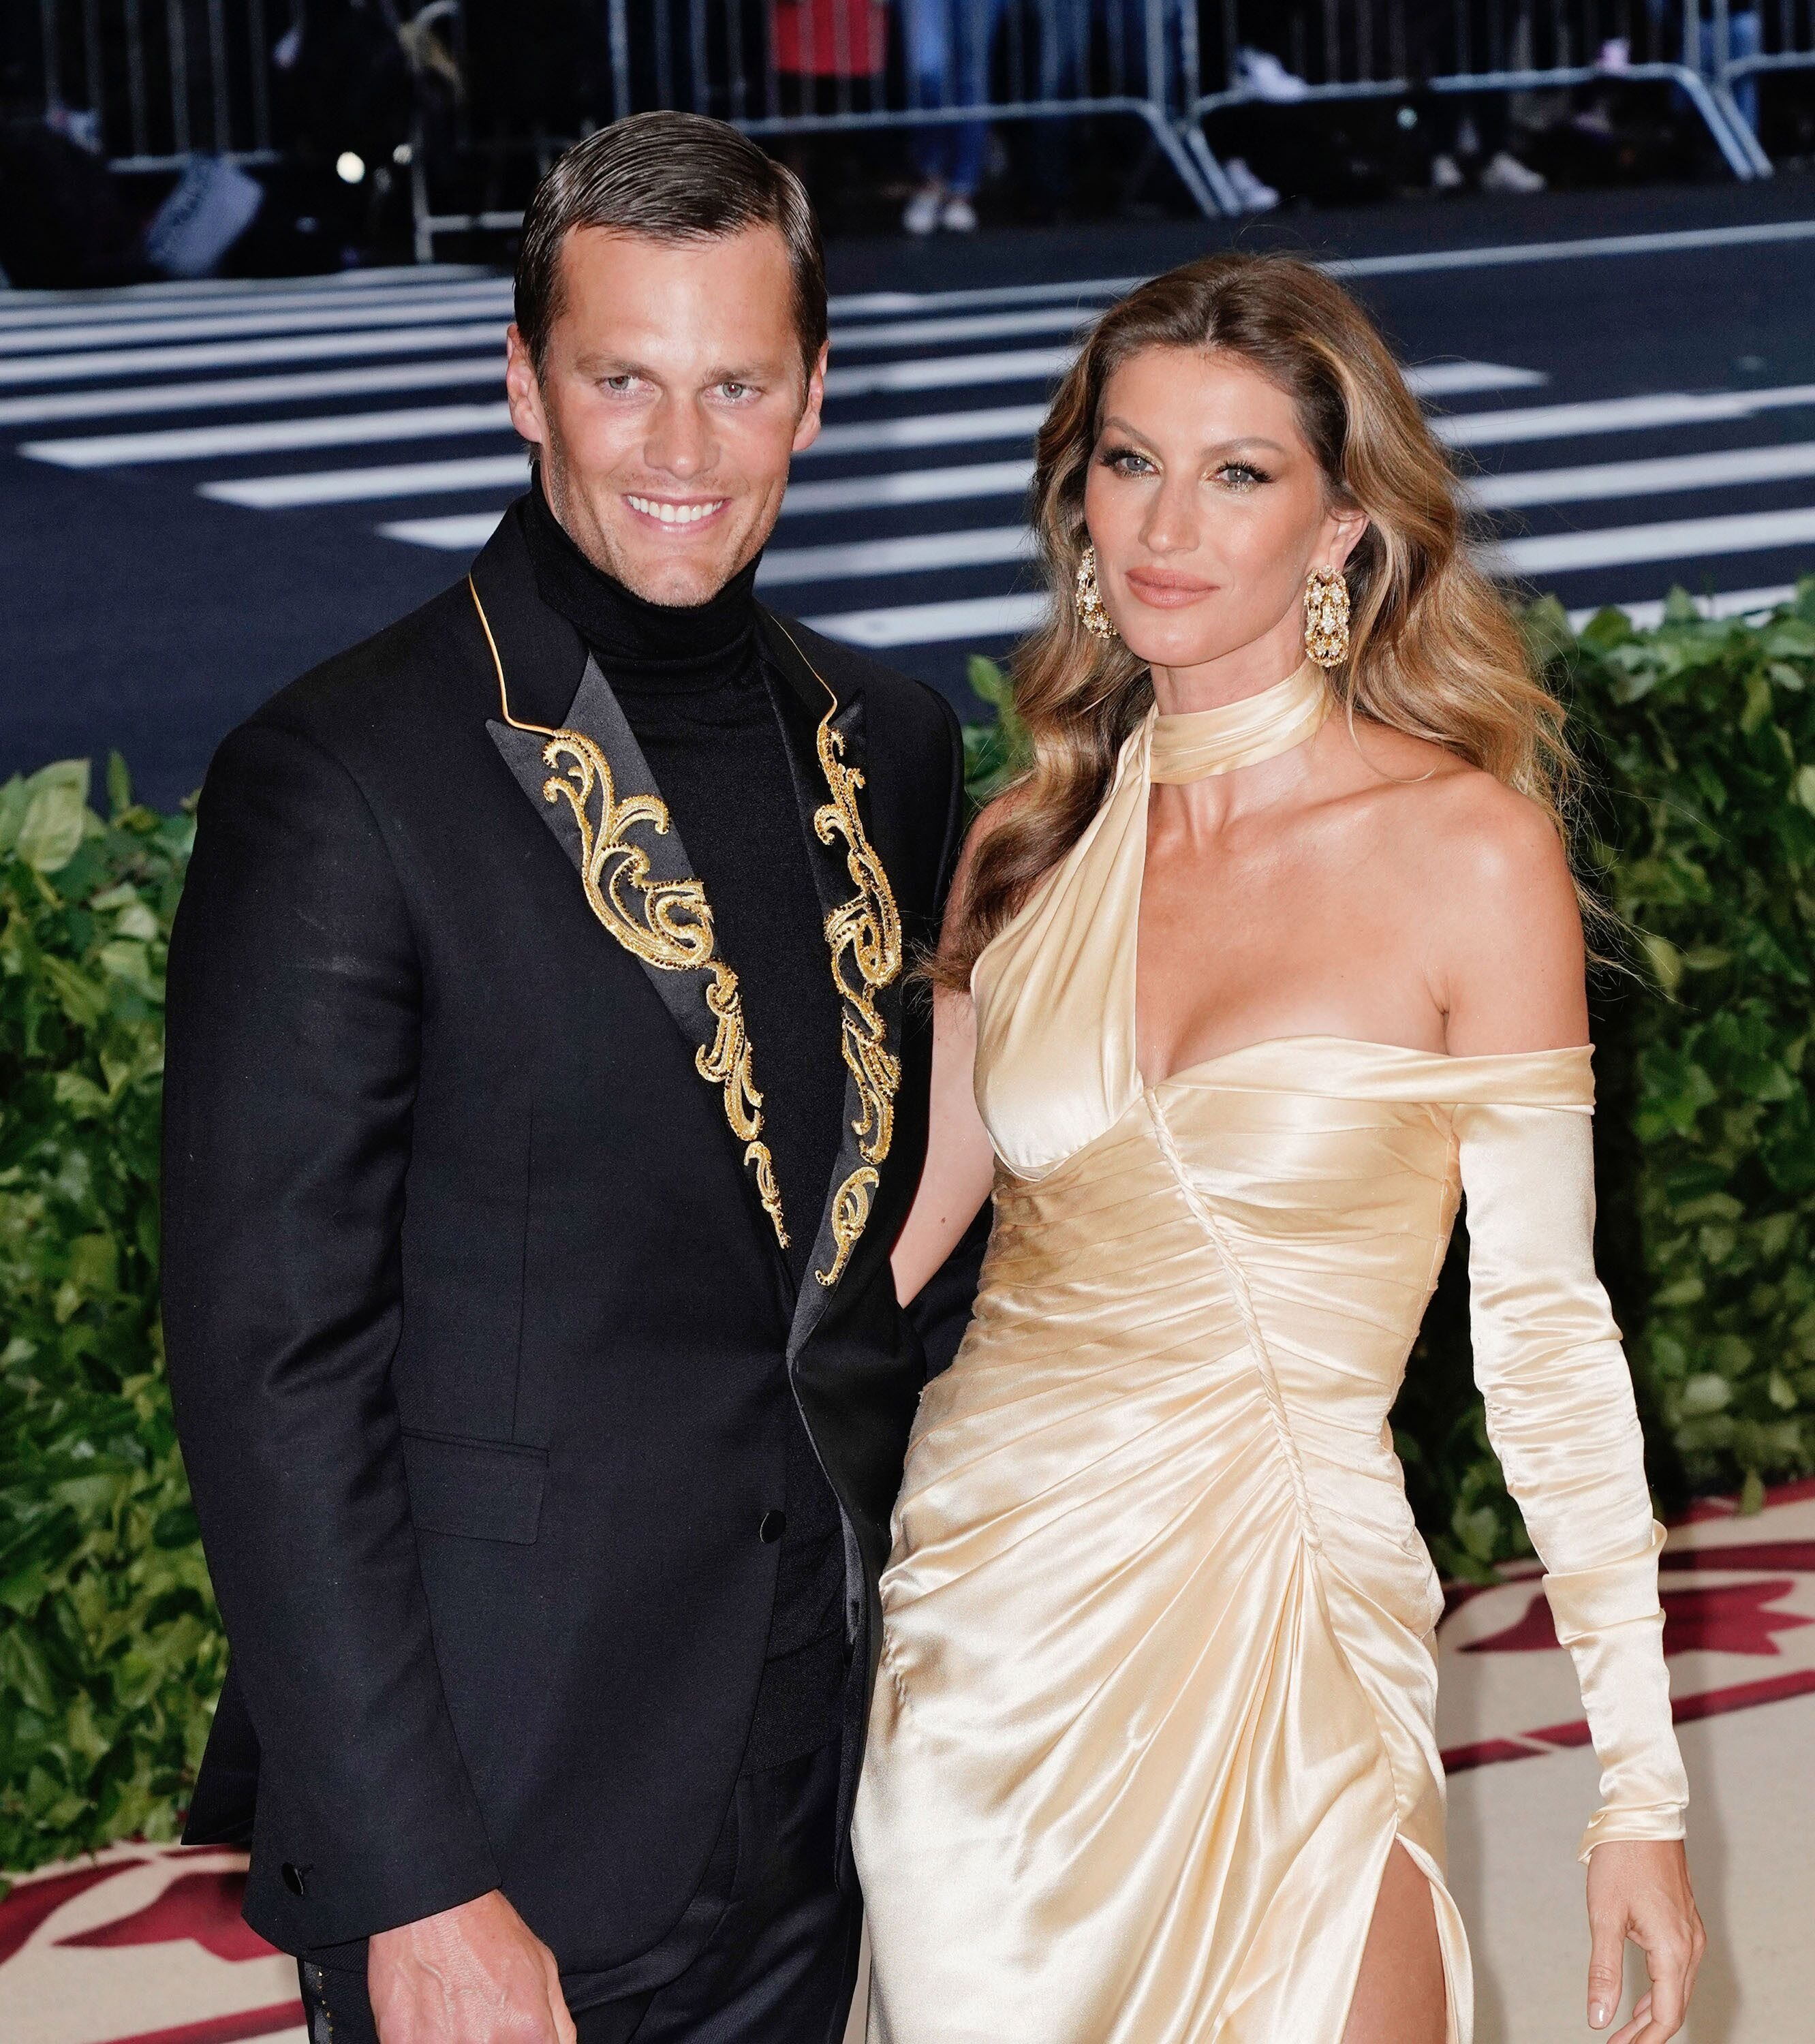 Gisele Bundchen and Tom Brady 2018 MET Gala in New York | Source: Getty Images